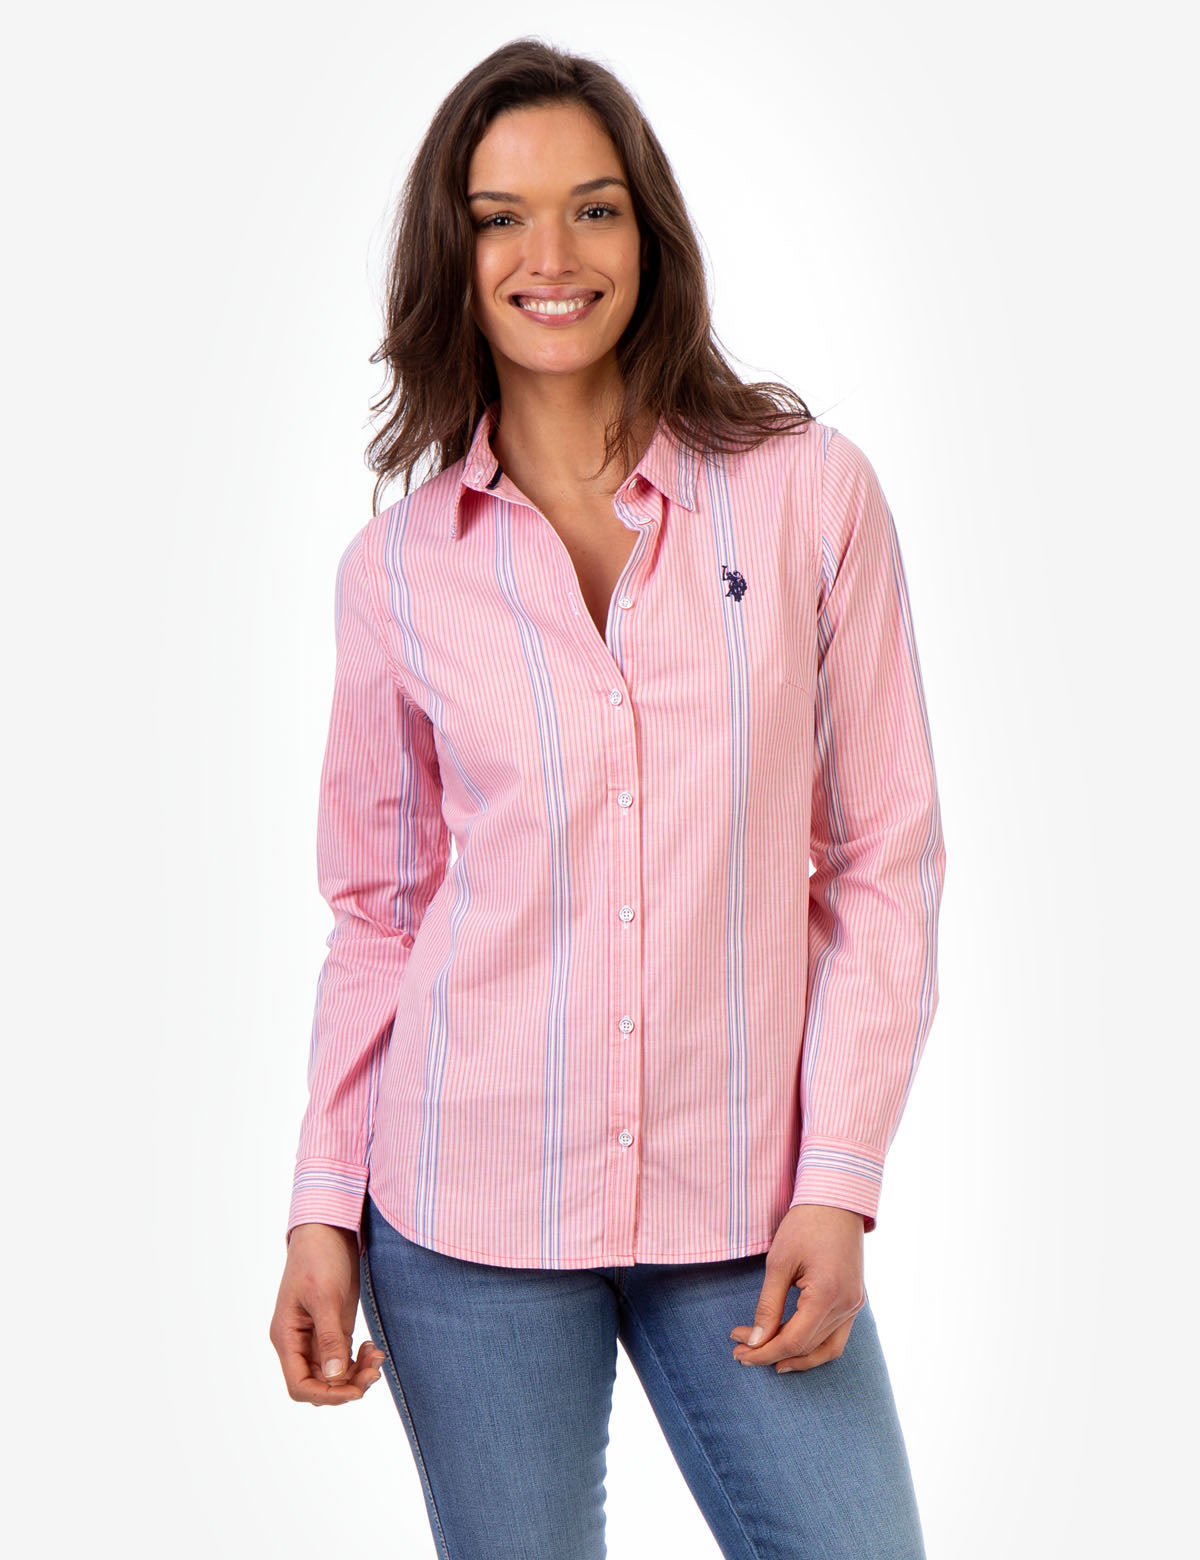 LONG SLEEVE STRIPED SHIRT - U.S. Polo Assn.